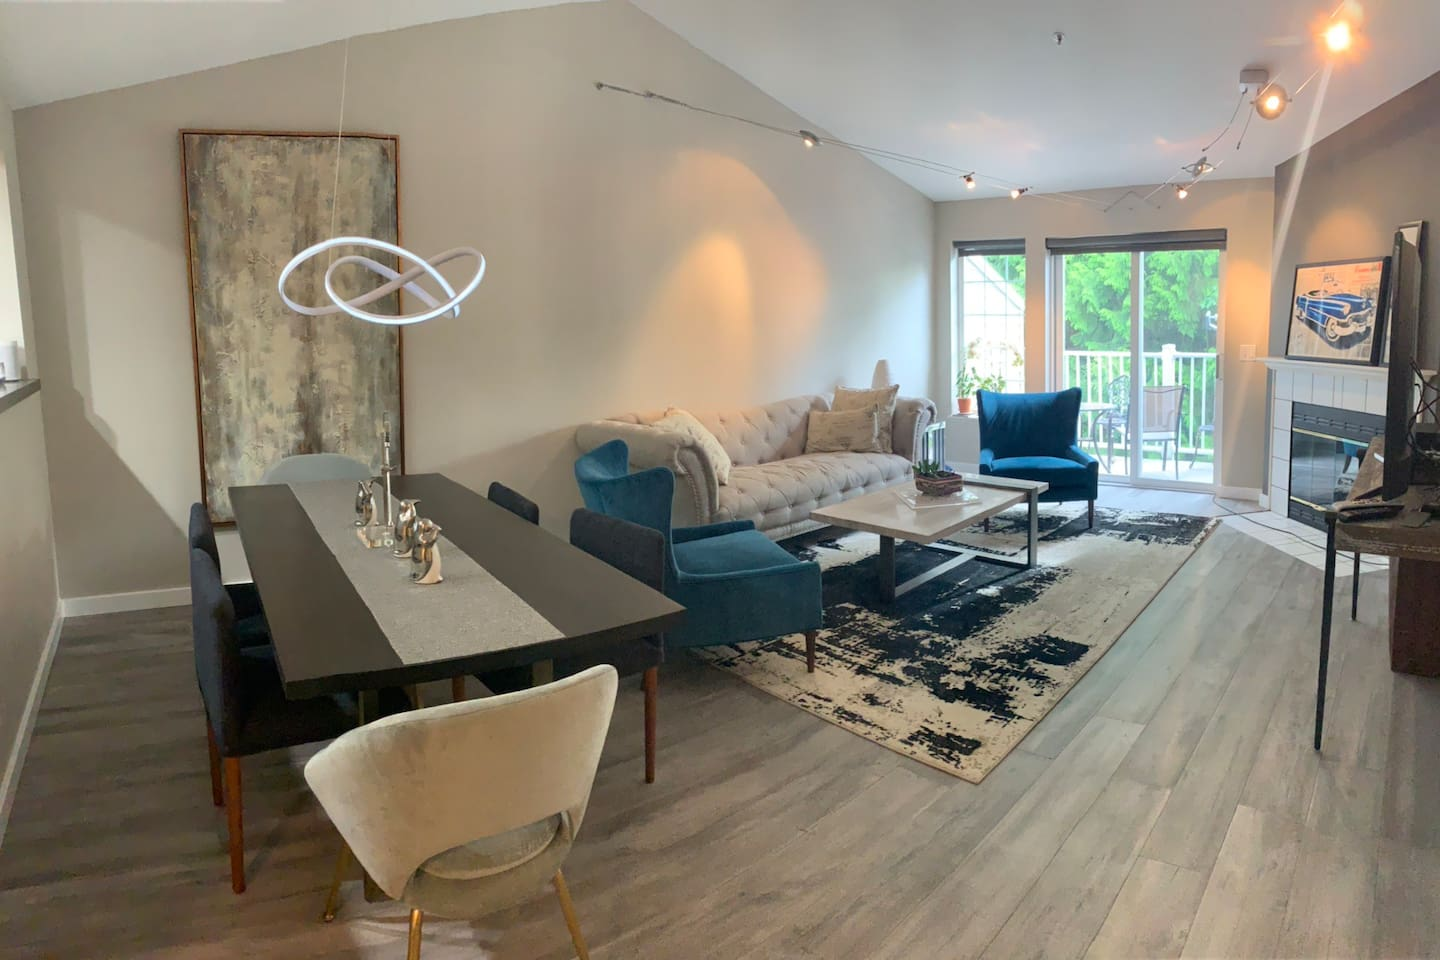 Beautiful modern and relaxing living room and dining area. This area is shared with the regular tenant.